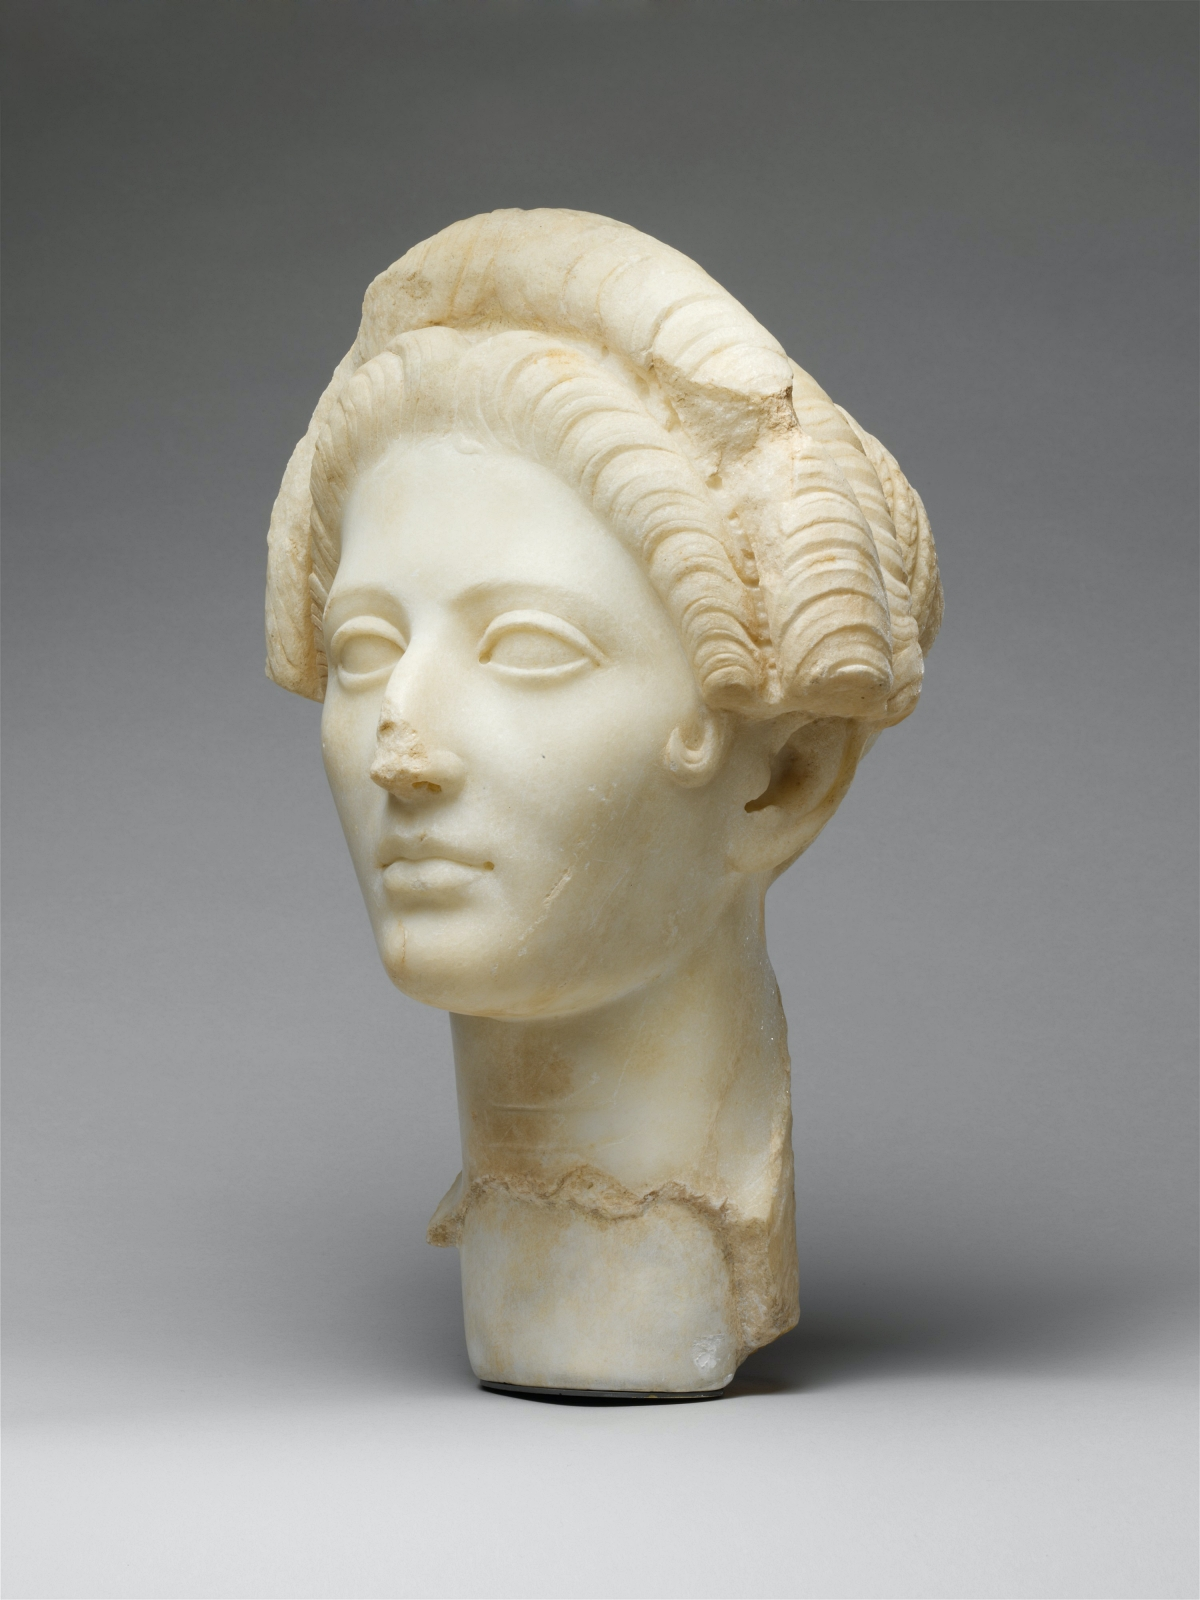 marble bust of ancient Roman woman